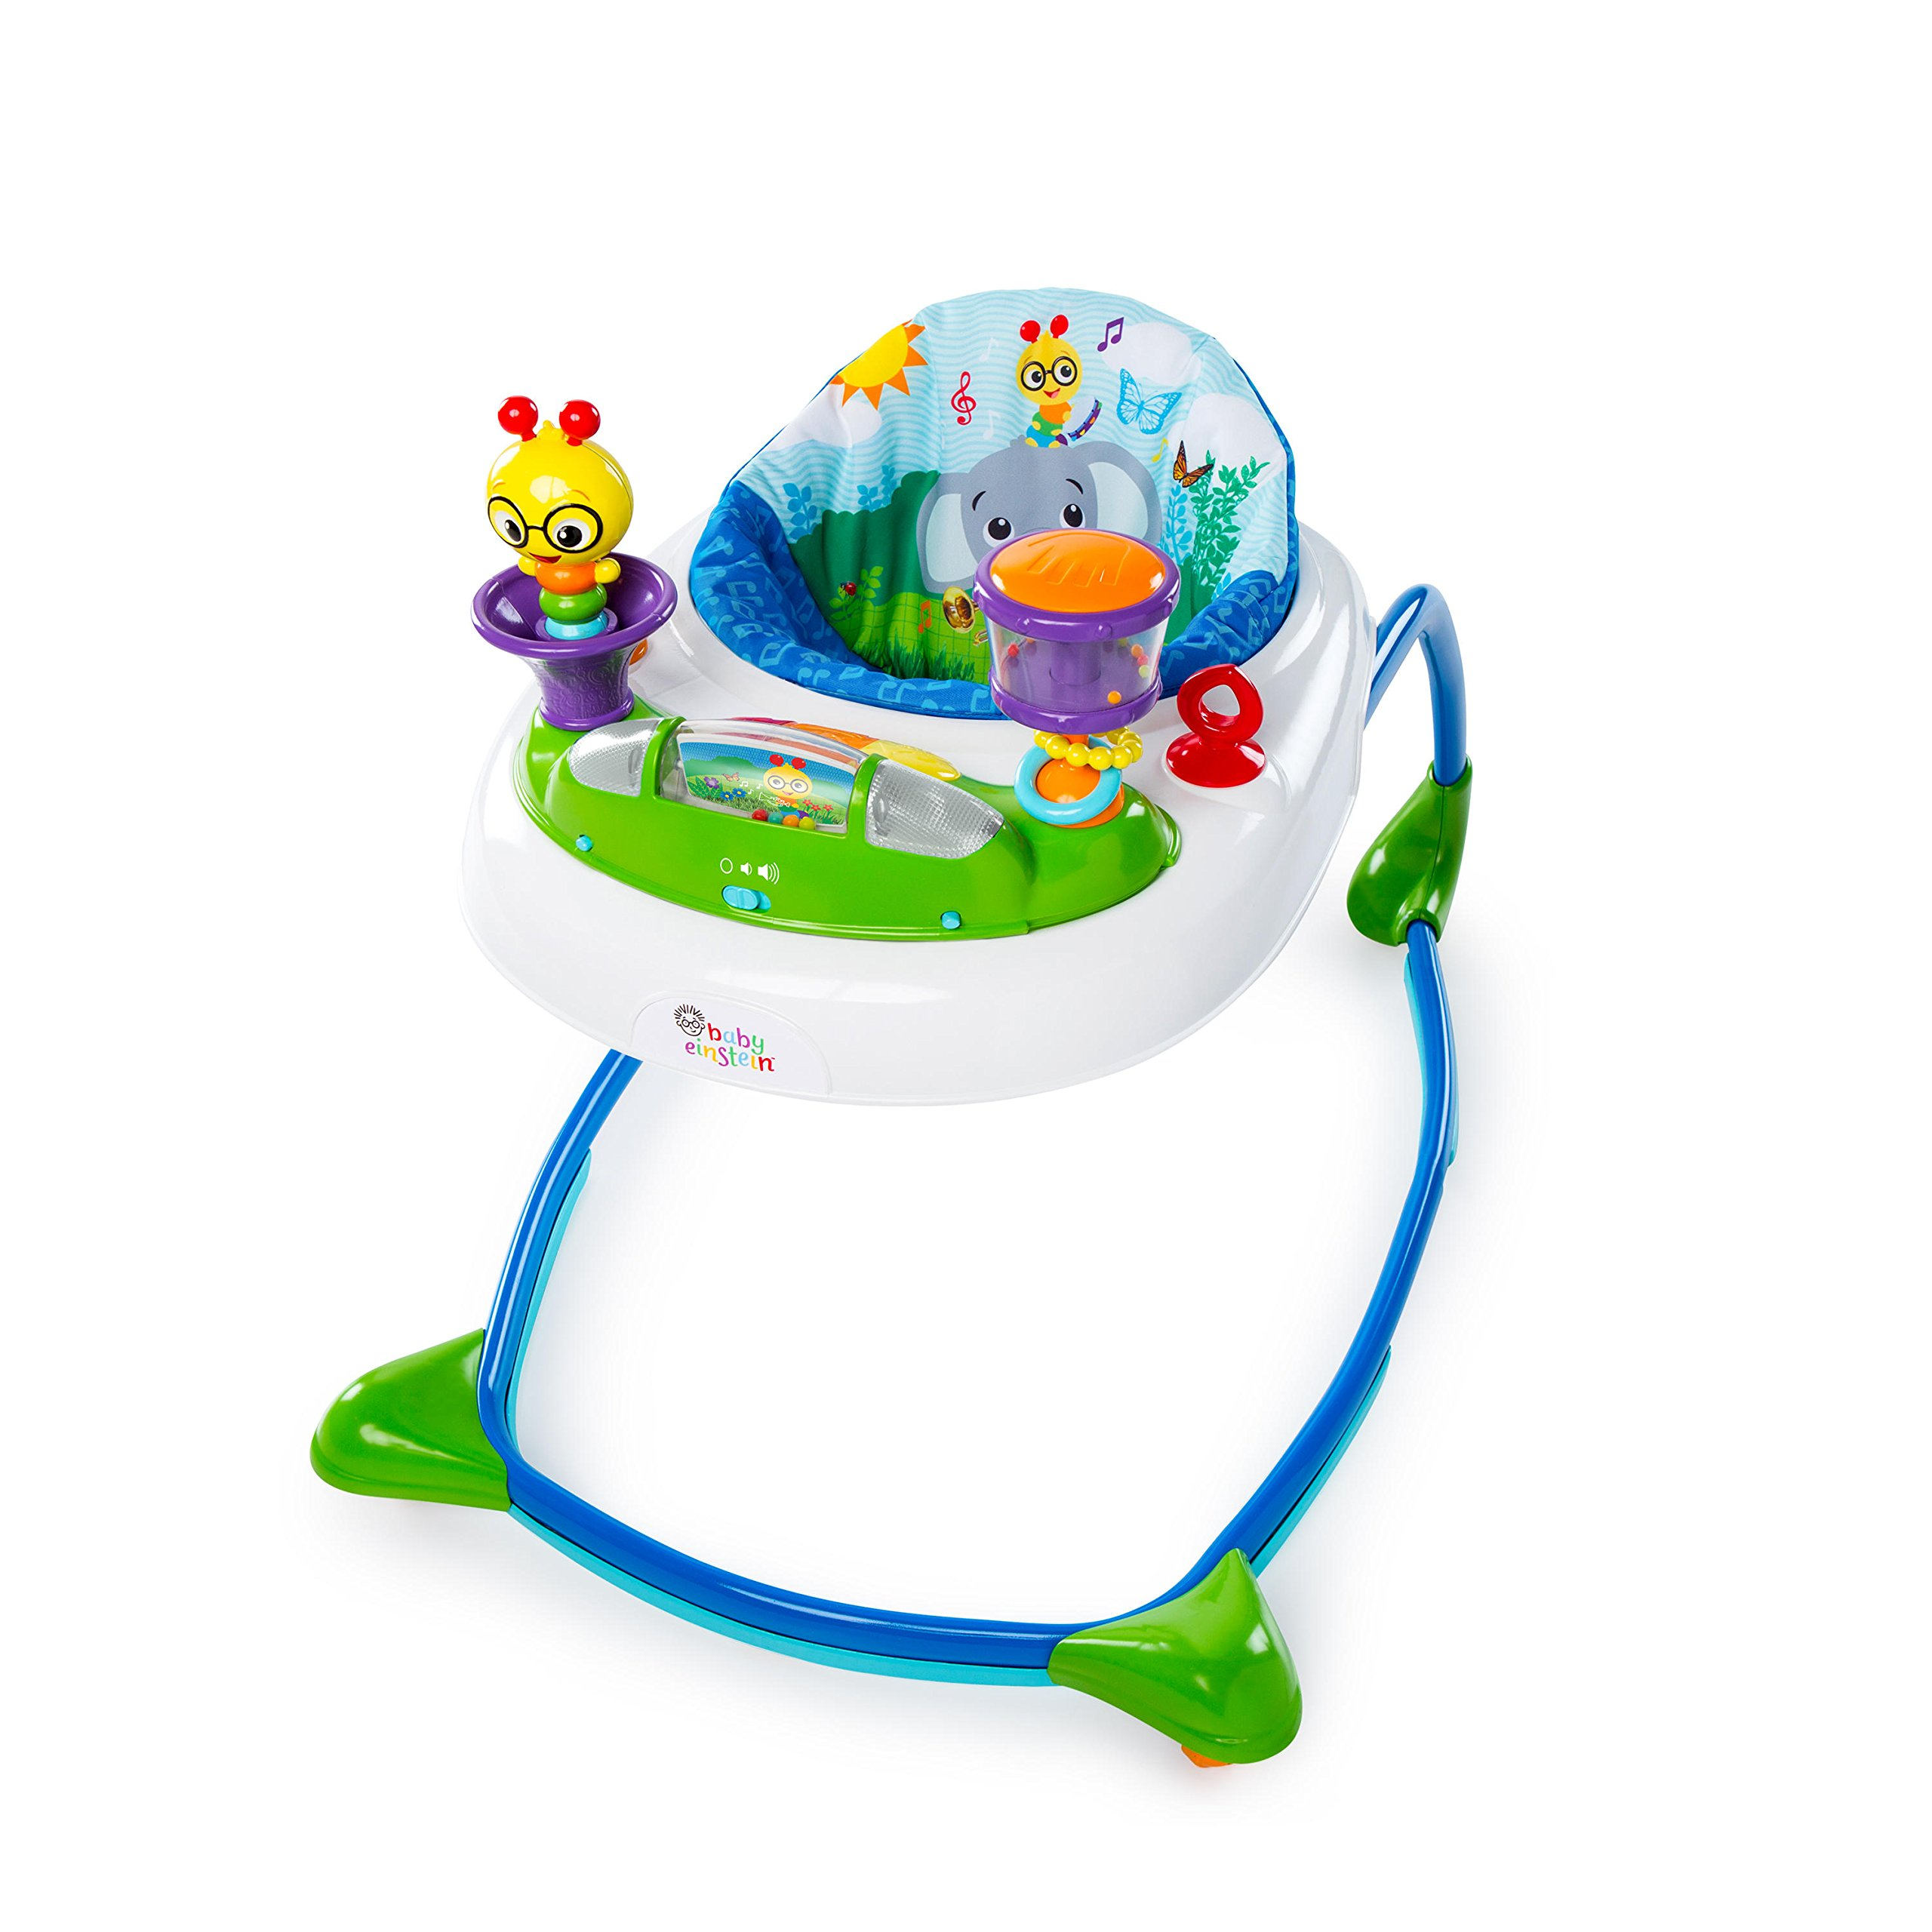 target market of baby einstein The specialty market was baby einstein  specialty stores couldn't afford to compete with wal-mart and target  enter your email below to receive marketingsherpa.